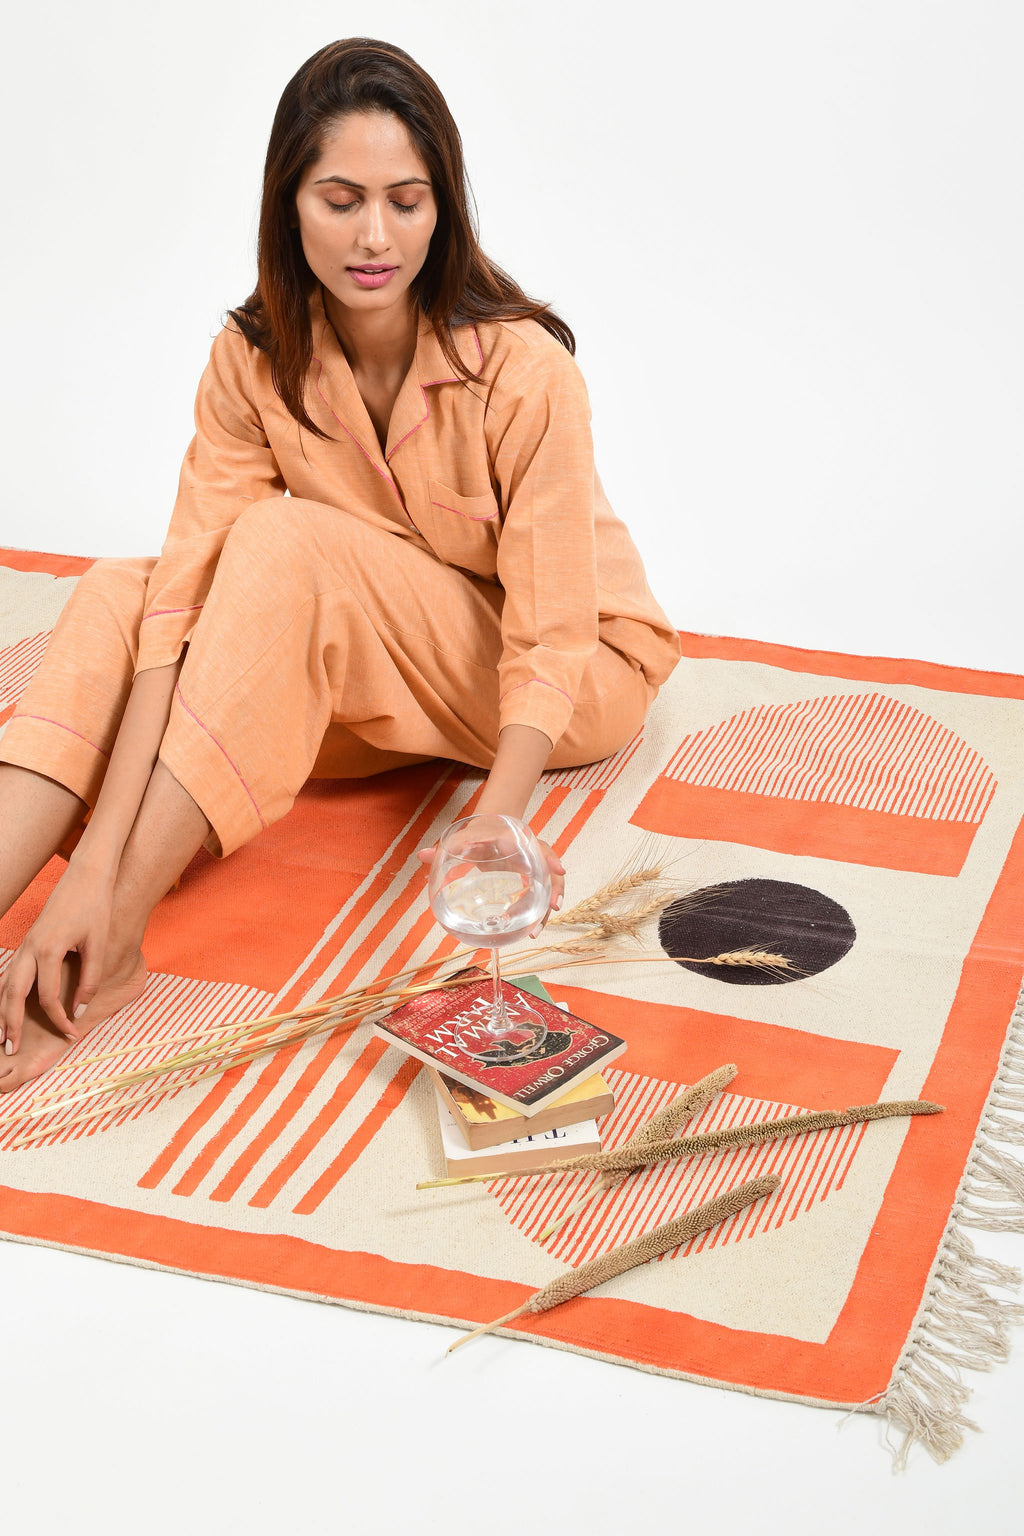 Creative pose of an Indian female womenswear fashion model in azo-free dyed handspun and handwoven khadi cotton nightwear pyjama & shirt in orange chambray by Cotton Rack and sitting on a handmade carpet with books and wine glass filled with water.